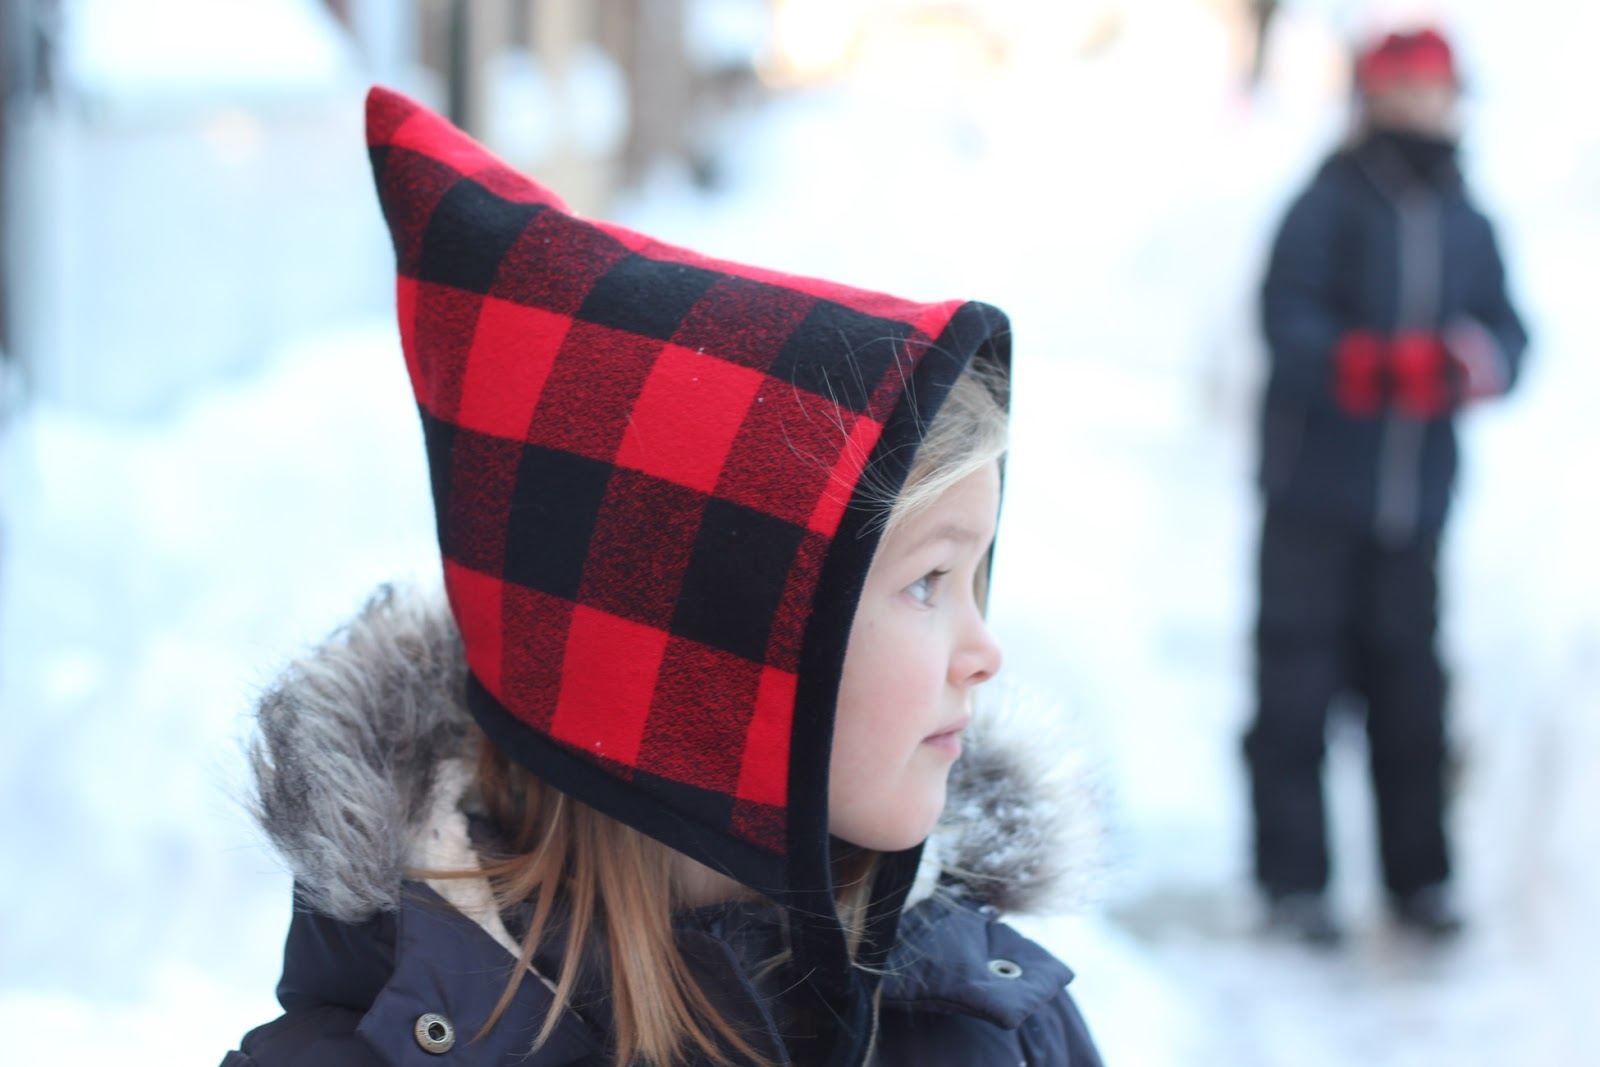 Sweetkm blizzard bonnet free hat sewing pattern in 5 sizes links ahead the delightfully warm and soft rk mammoth flannel in red buffalo check the fabric is very thick and is perfect for outerwear hats jeuxipadfo Image collections